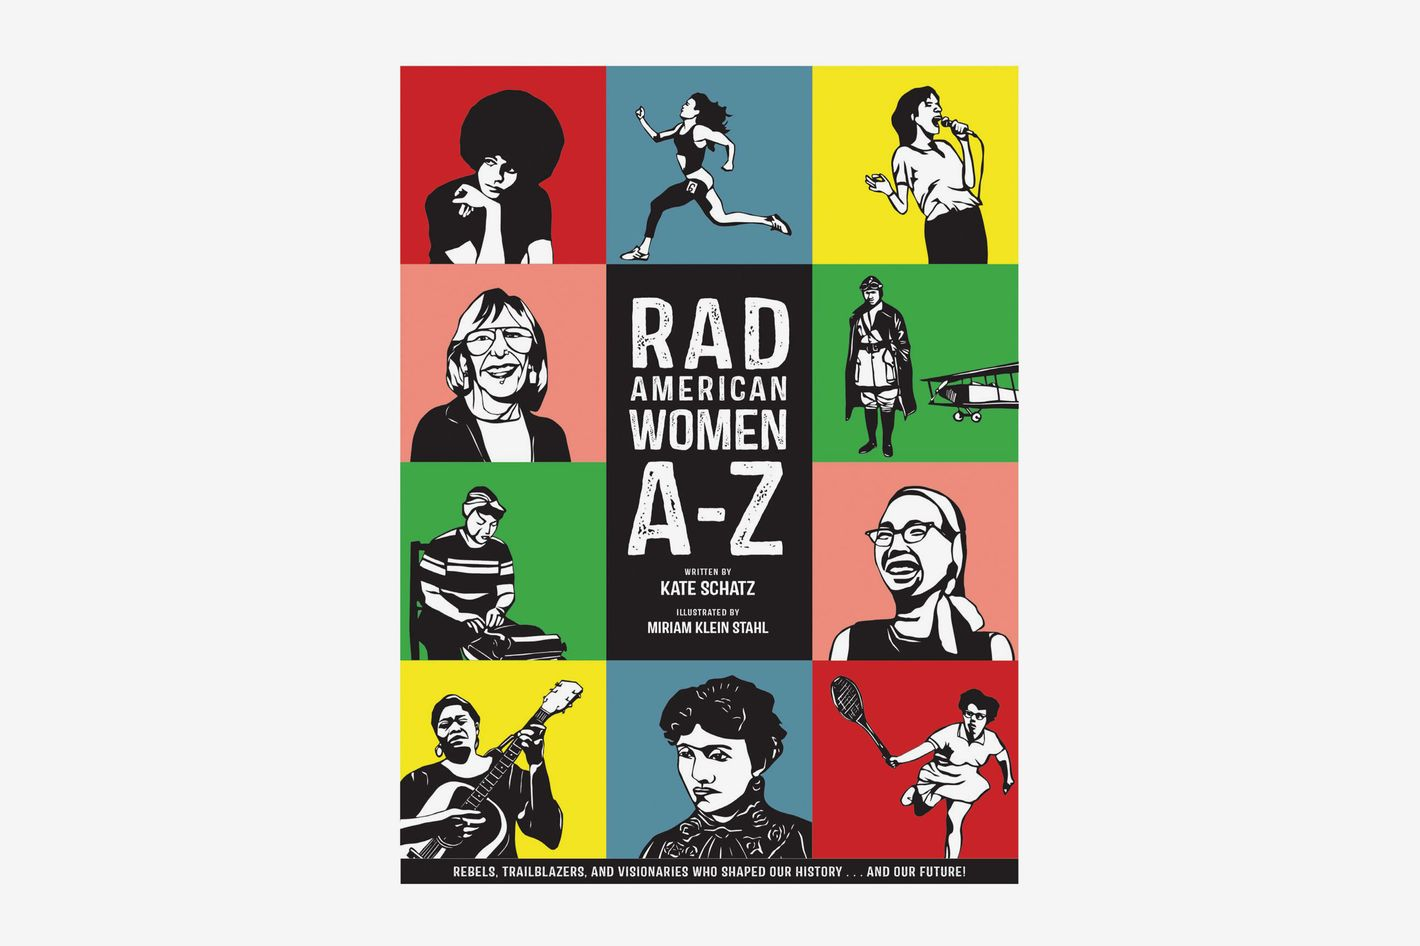 Rad American Women A–Z: Rebels, Trailblazers, and Visionaries Who Shaped Our History … and Our Future! by Kate Schatz